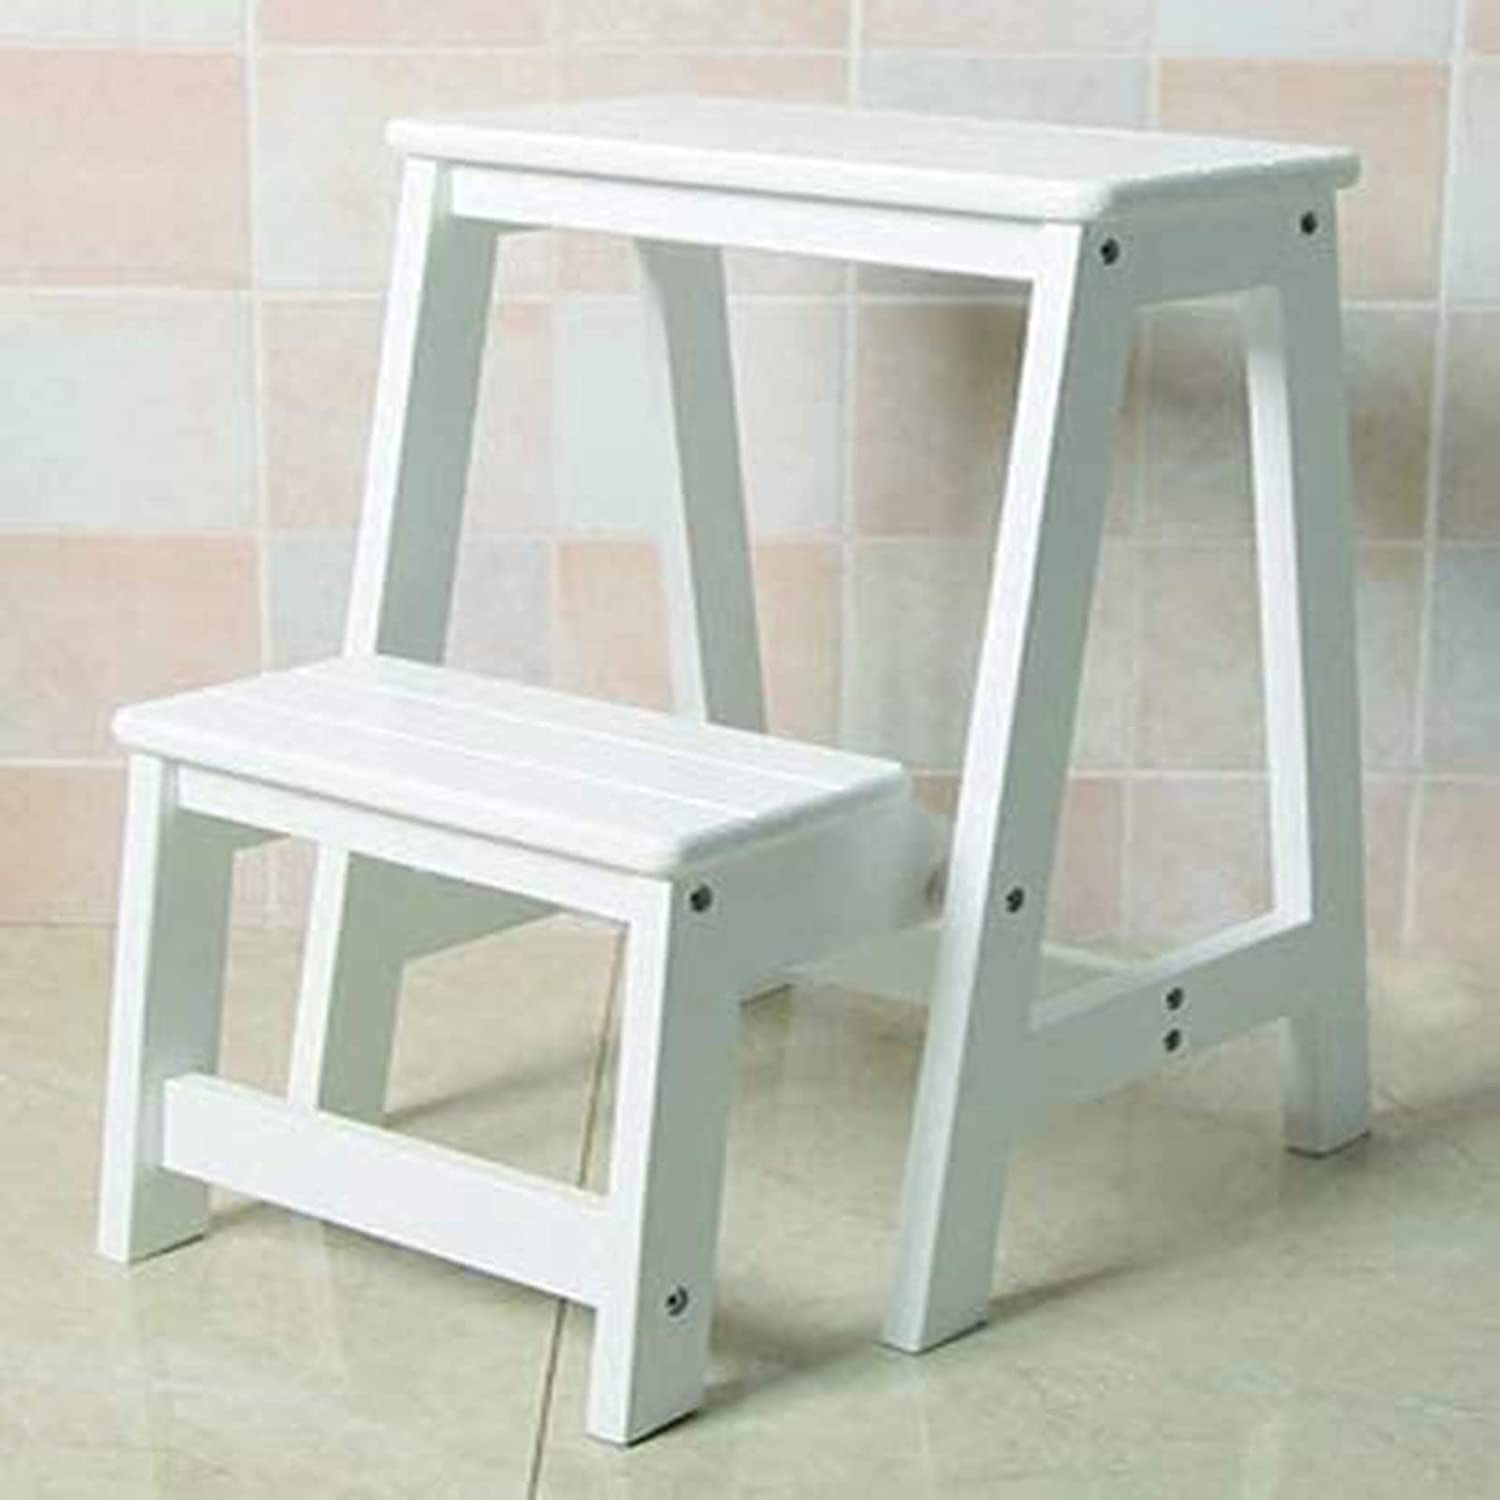 Step Stool Wood Folding for Kids Adults Ranking Ranking TOP15 TOP10 Kitchen Mult